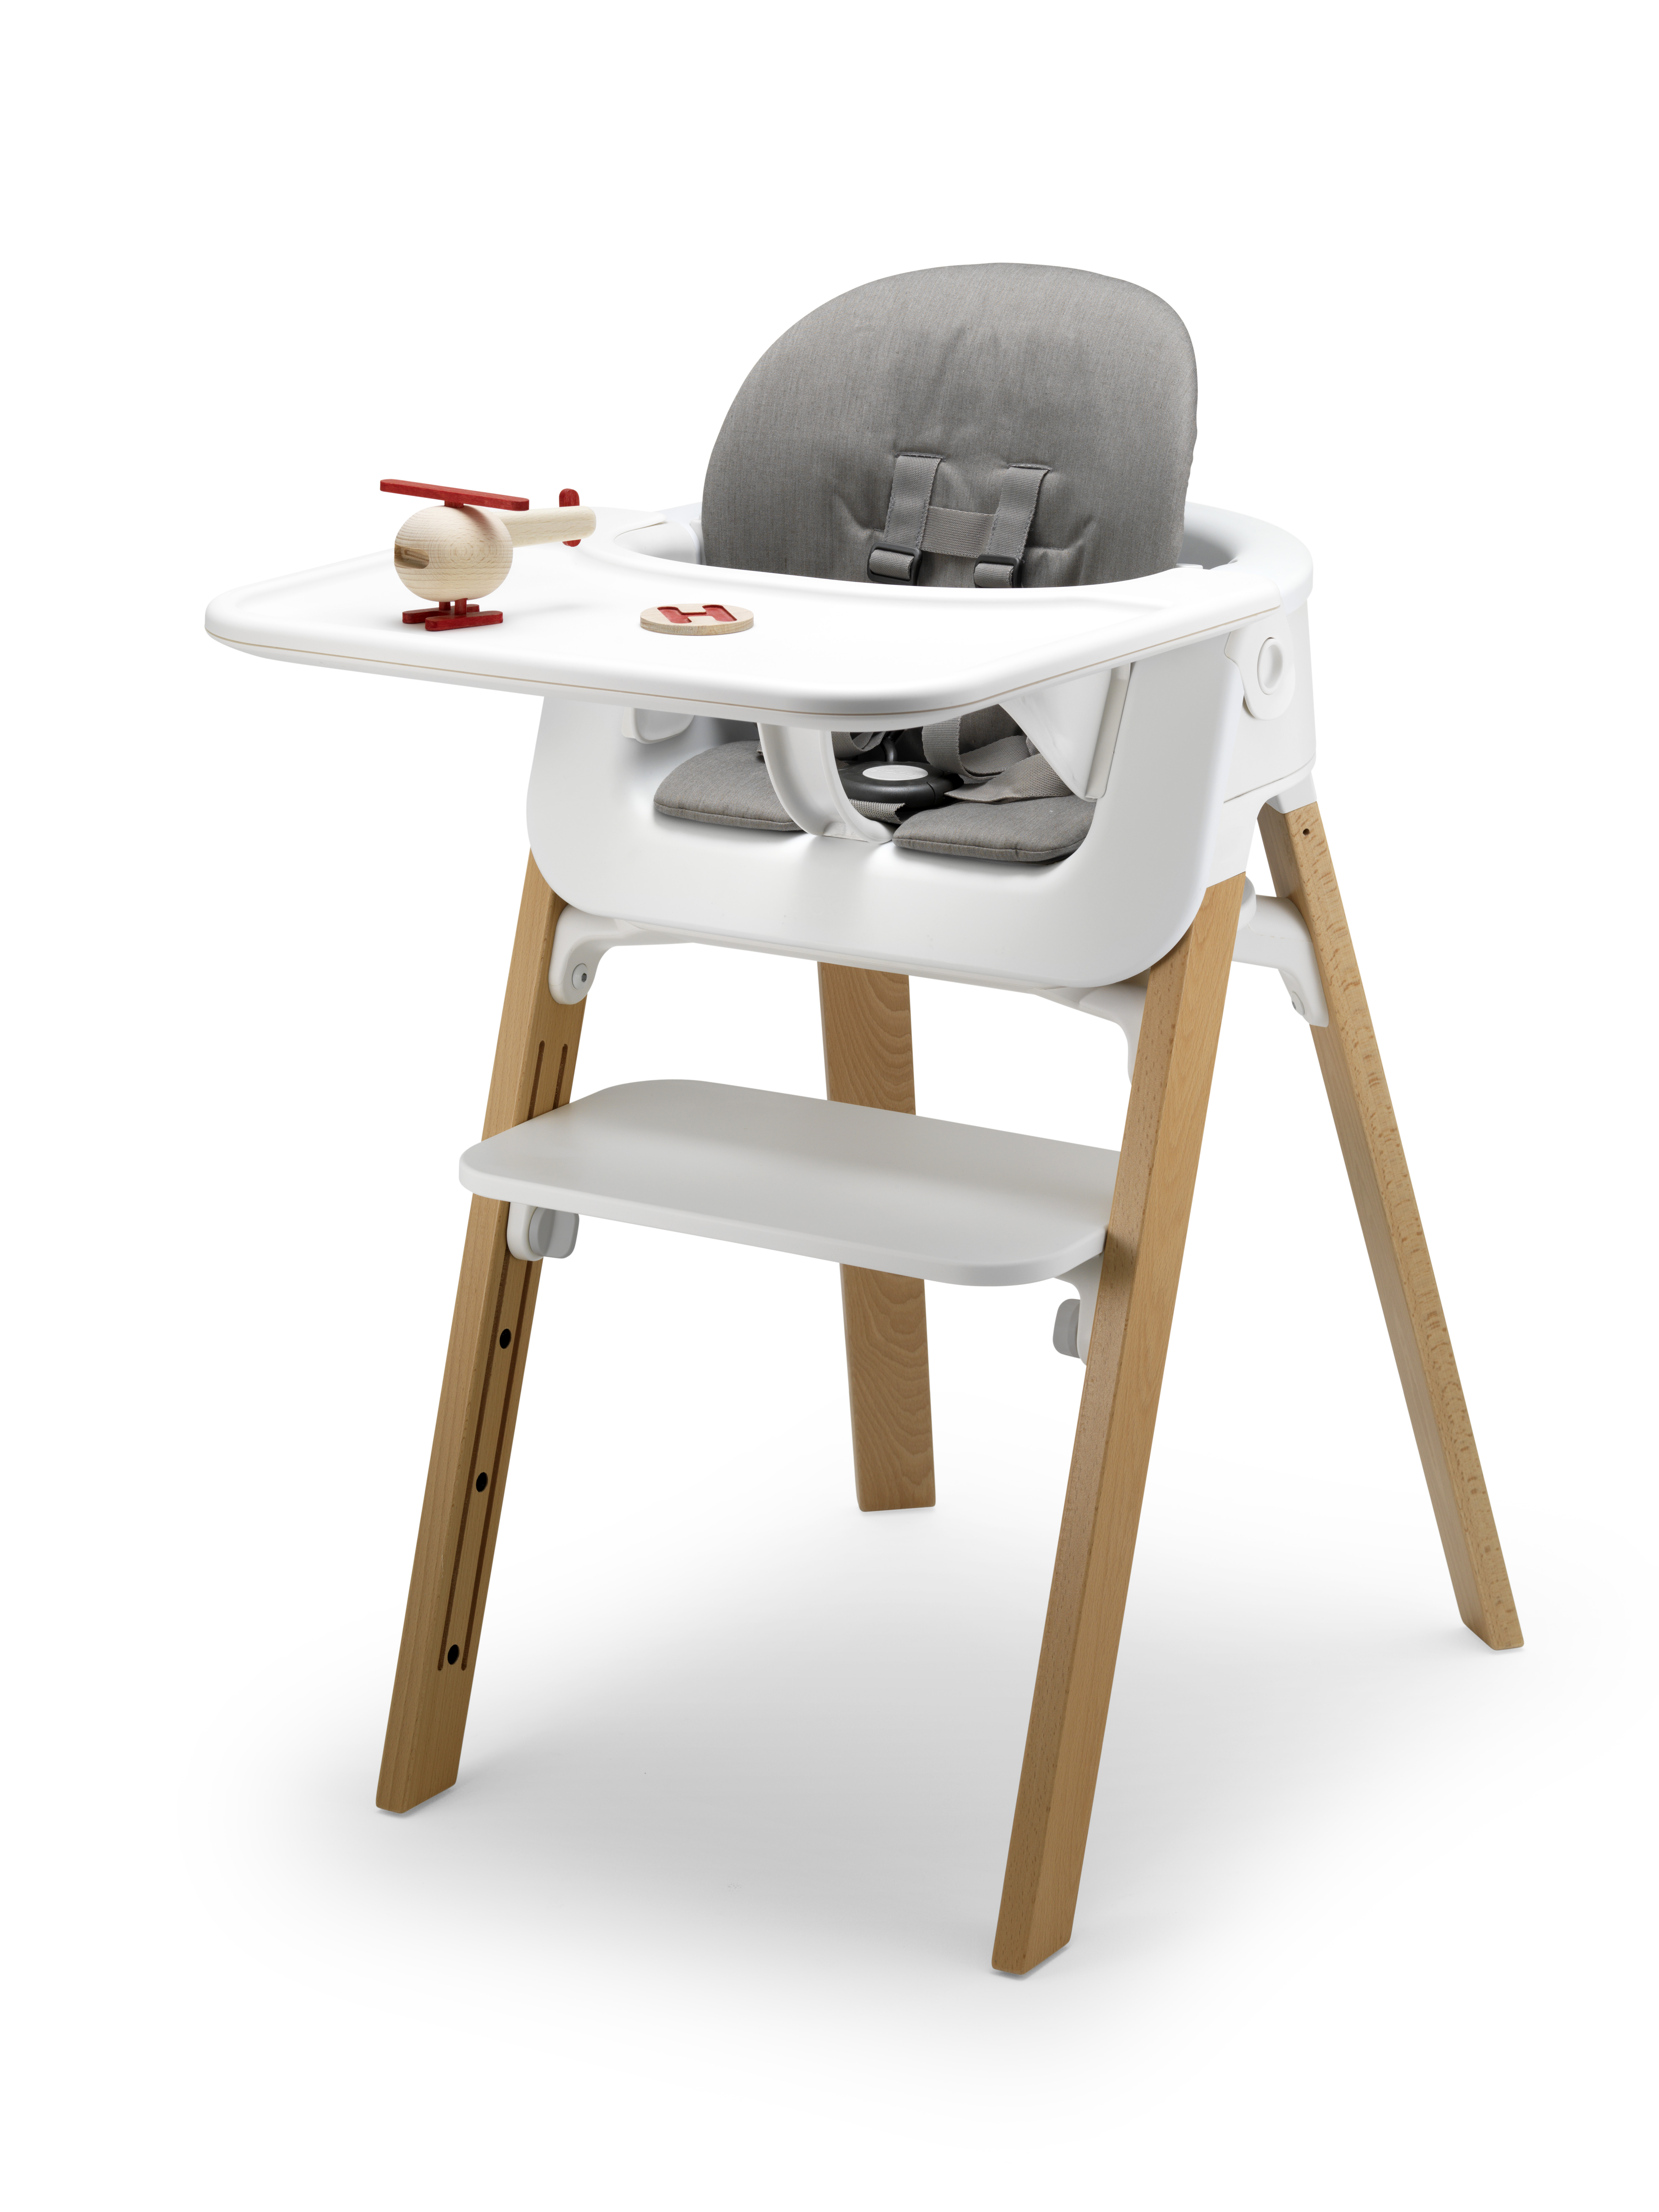 Stokke Fan Check Out The New Stokke Steps Kip Hakes